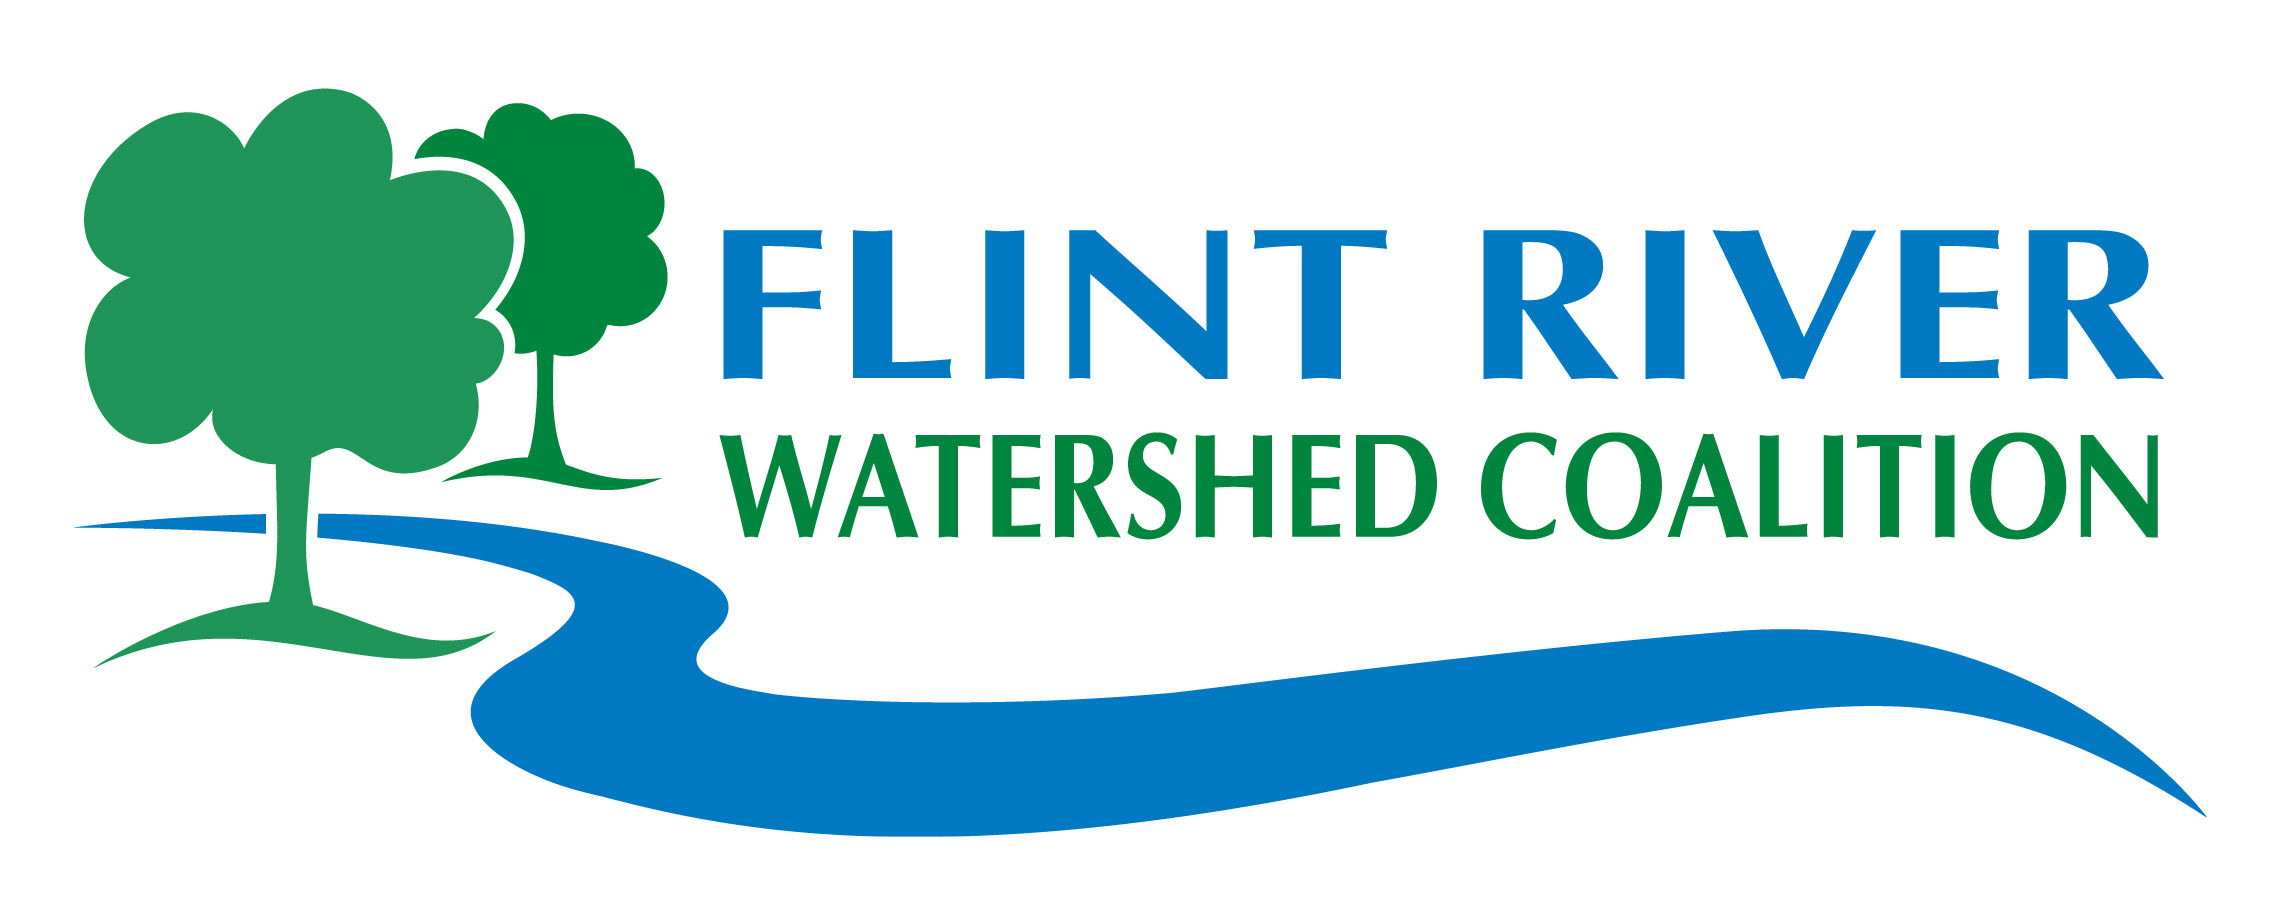 Bridge clipart watershed Watershed Coalition Logo FRWC logo